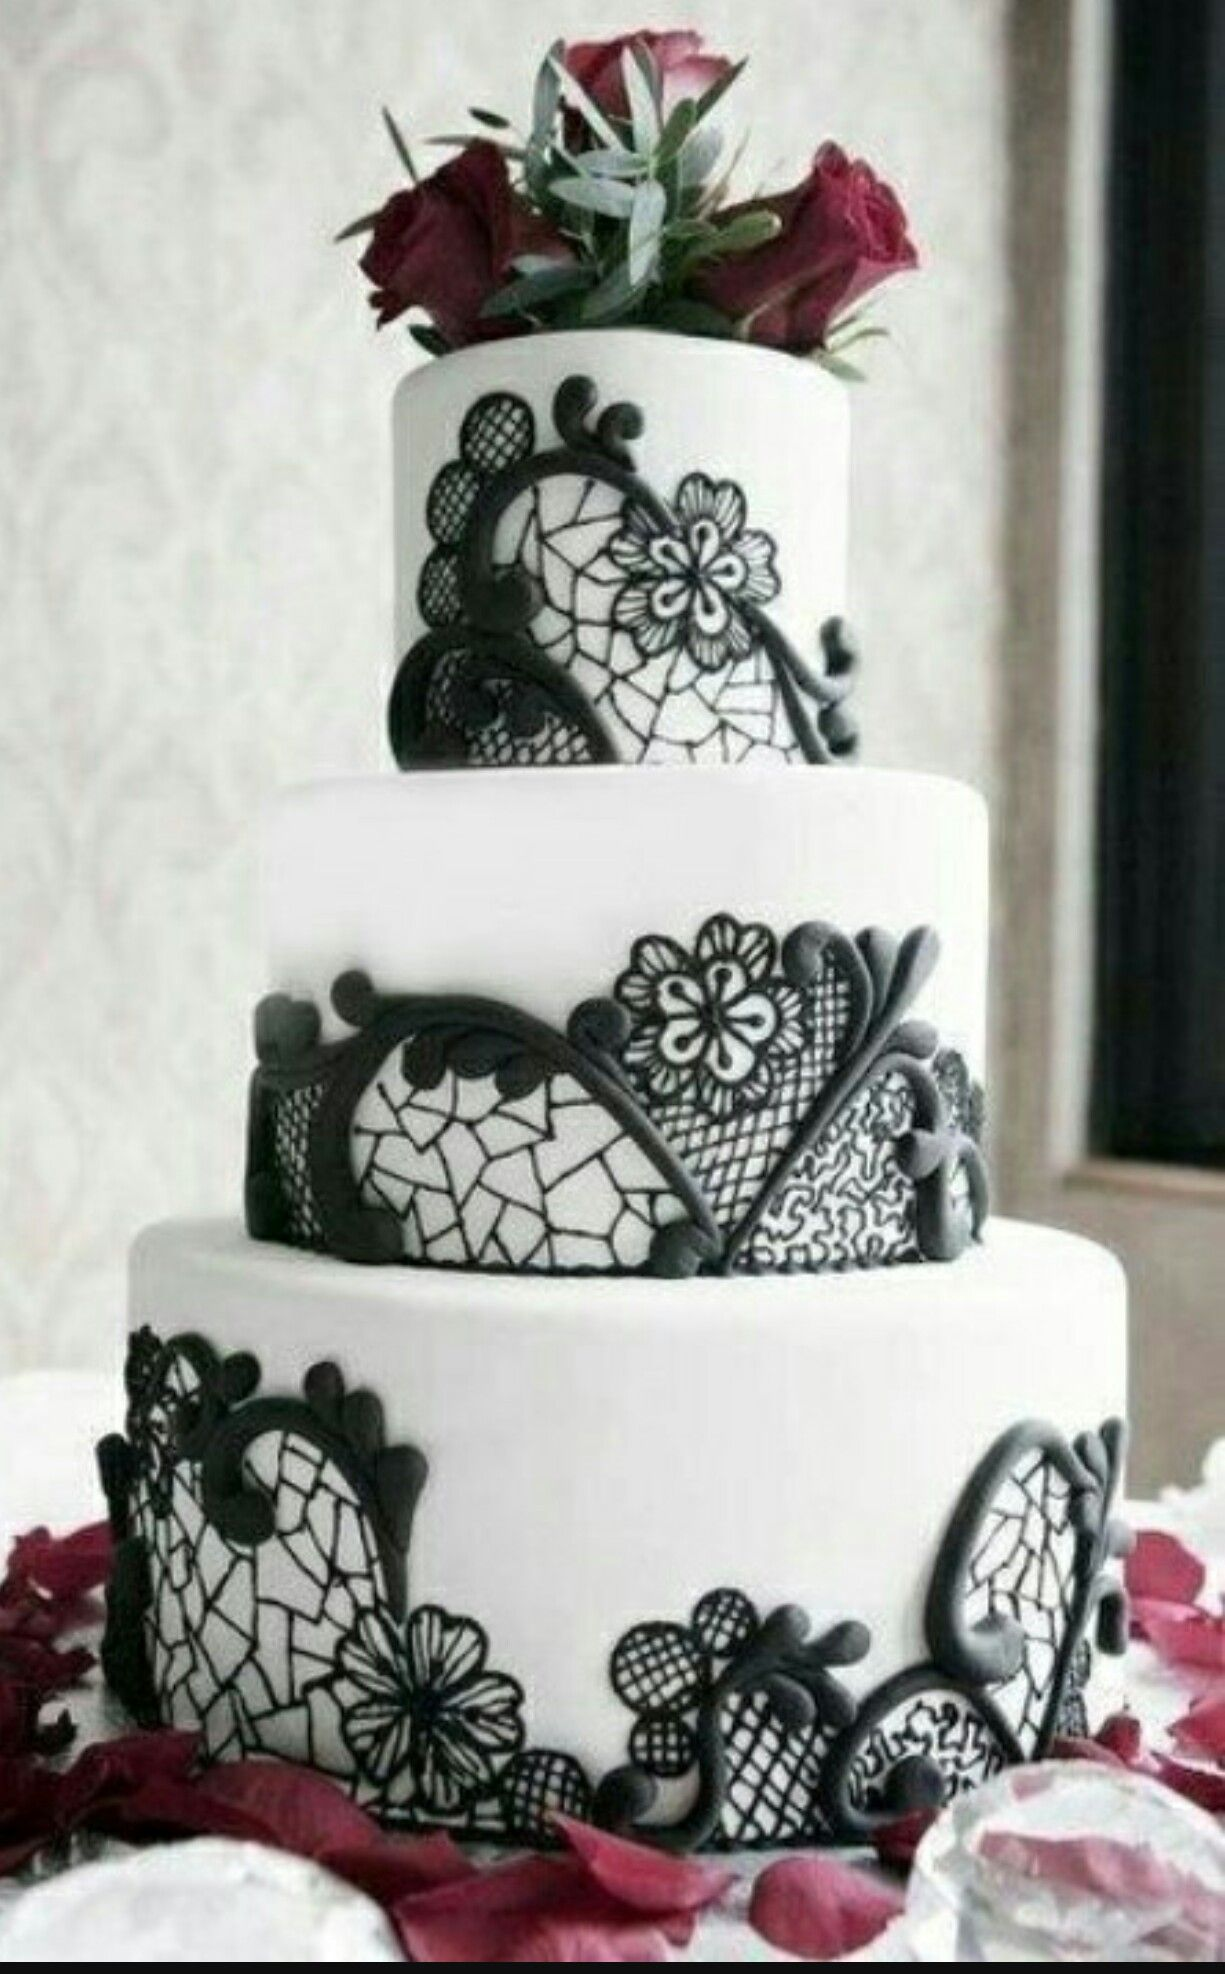 Pin by Leyda V. Febres on Lace Cakes | Pinterest | Lace cakes and Cake